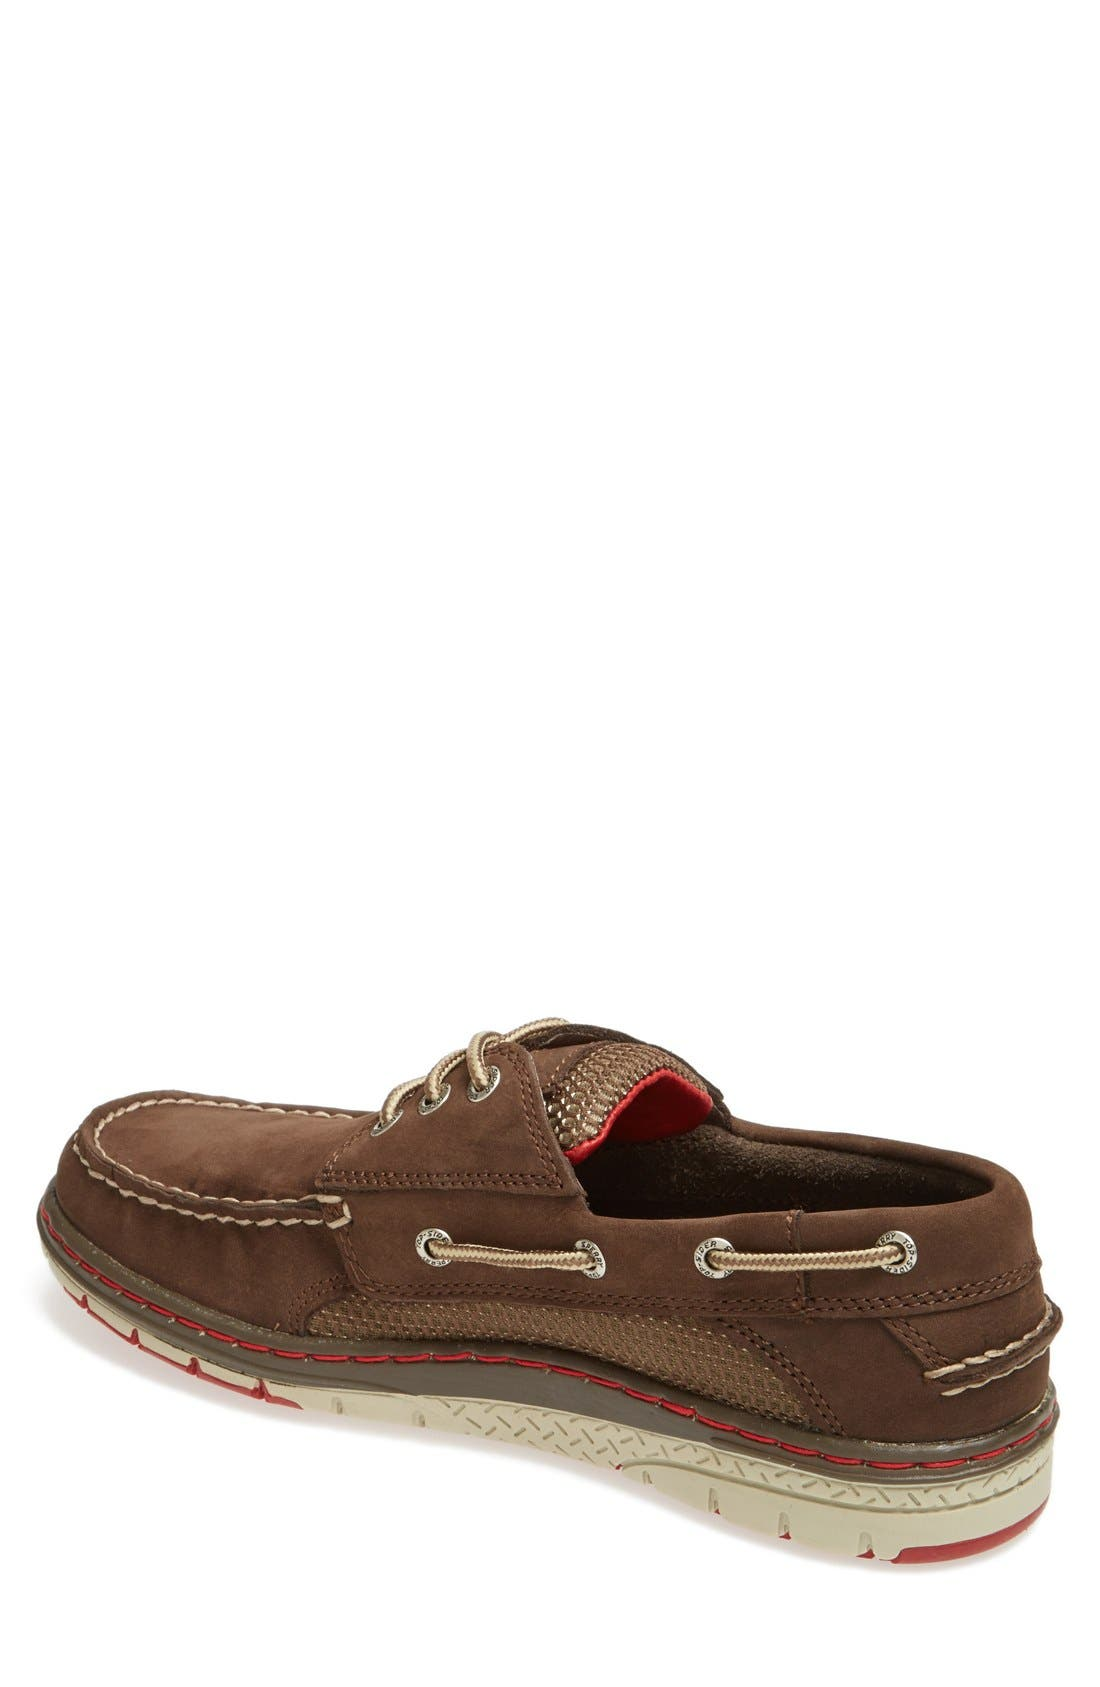 'Billfish Ultralite' Boat Shoe,                             Alternate thumbnail 70, color,